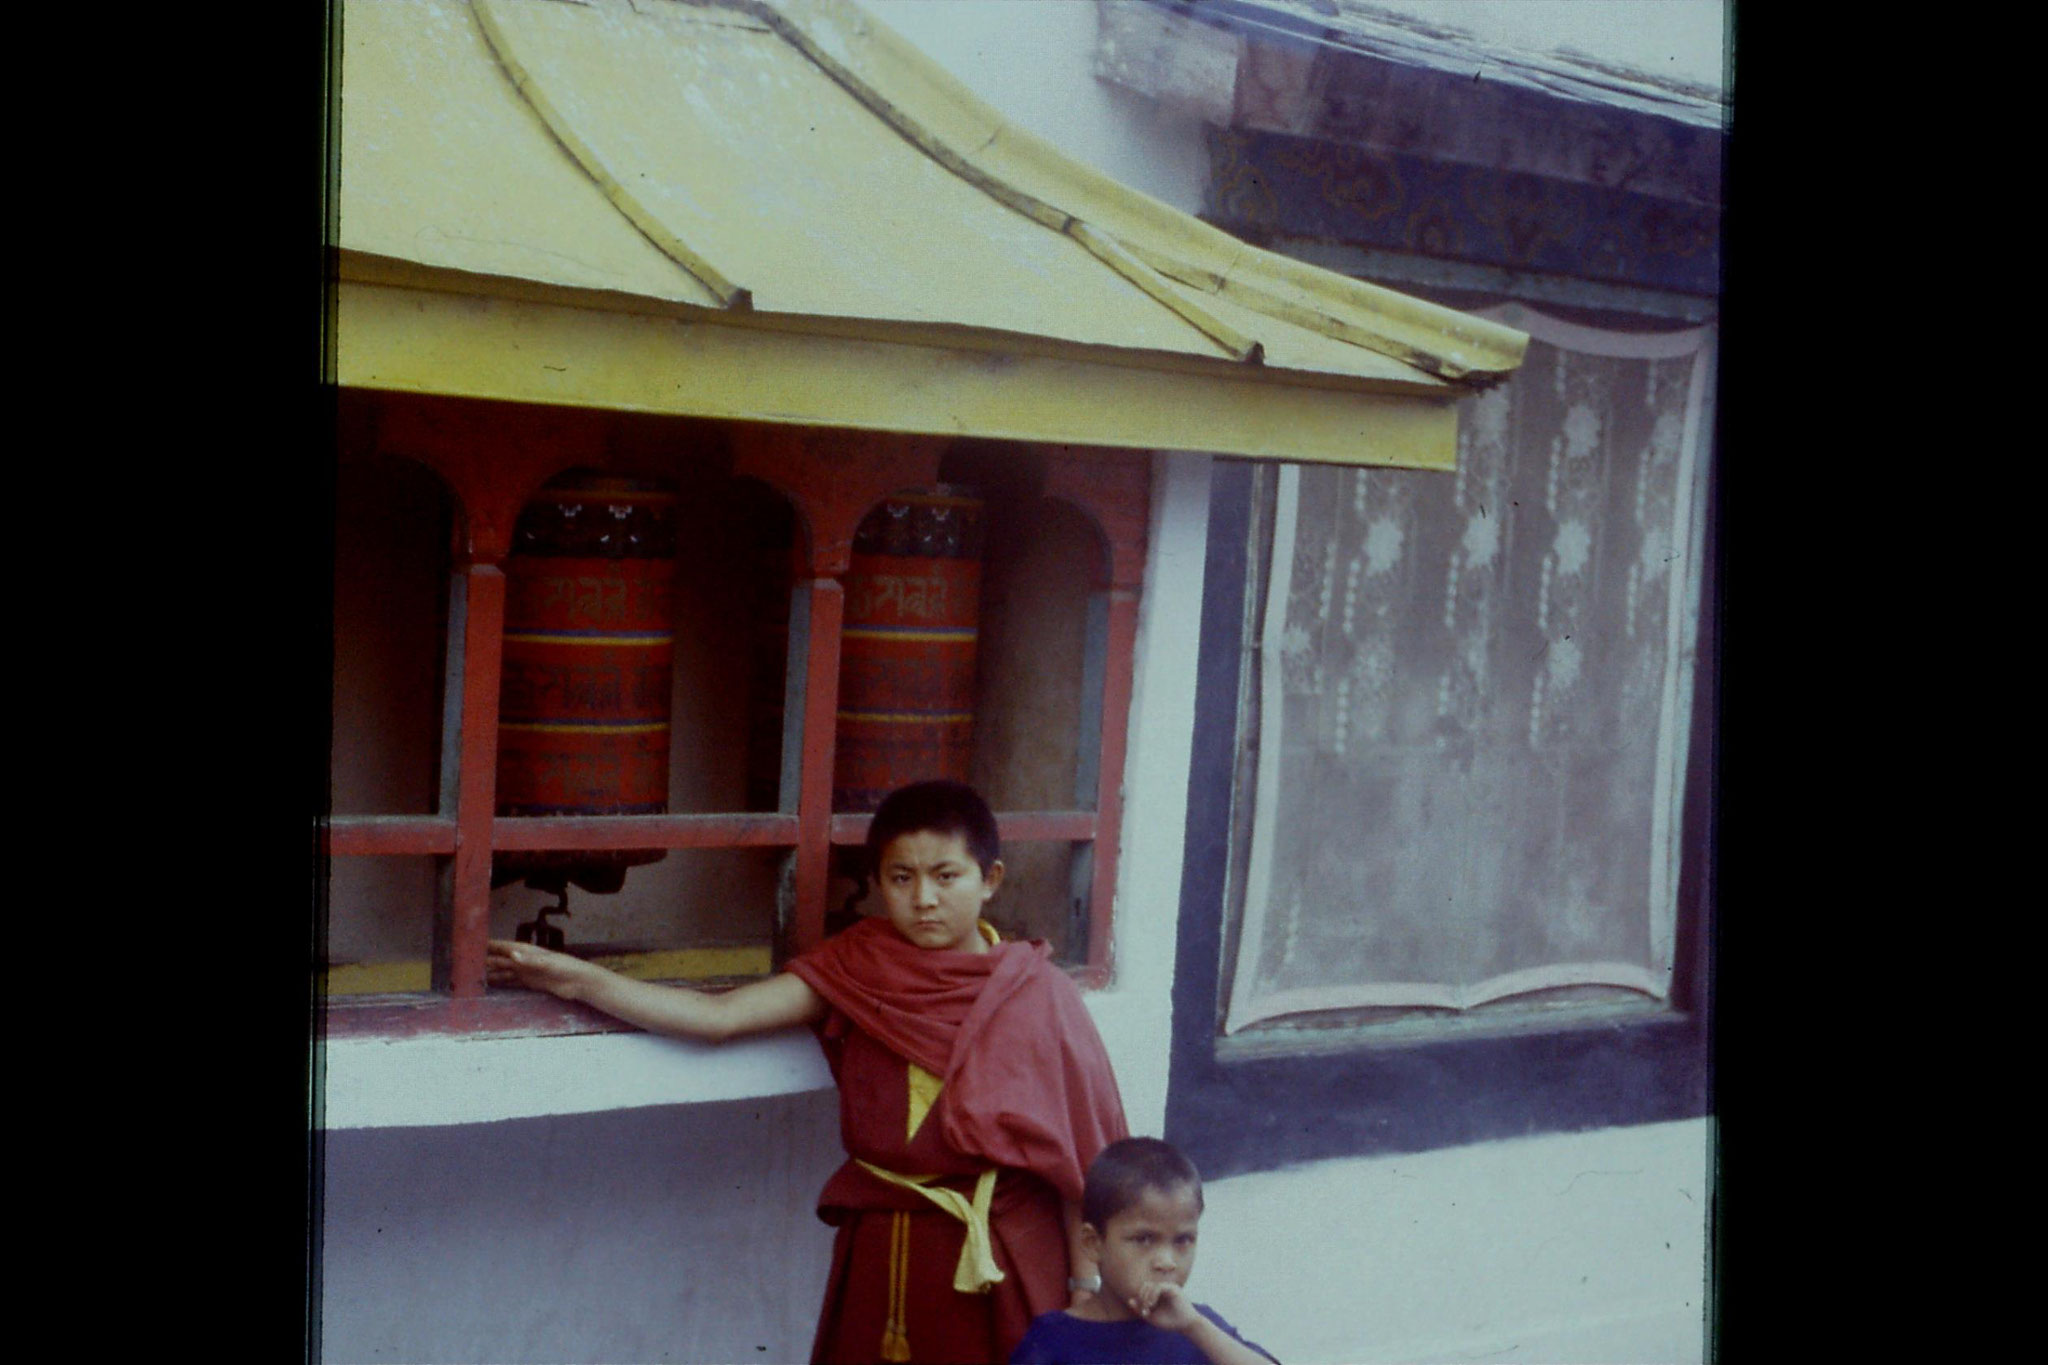 115/14: 23/4/1990 Rumtek - prayer wheel and boy monk